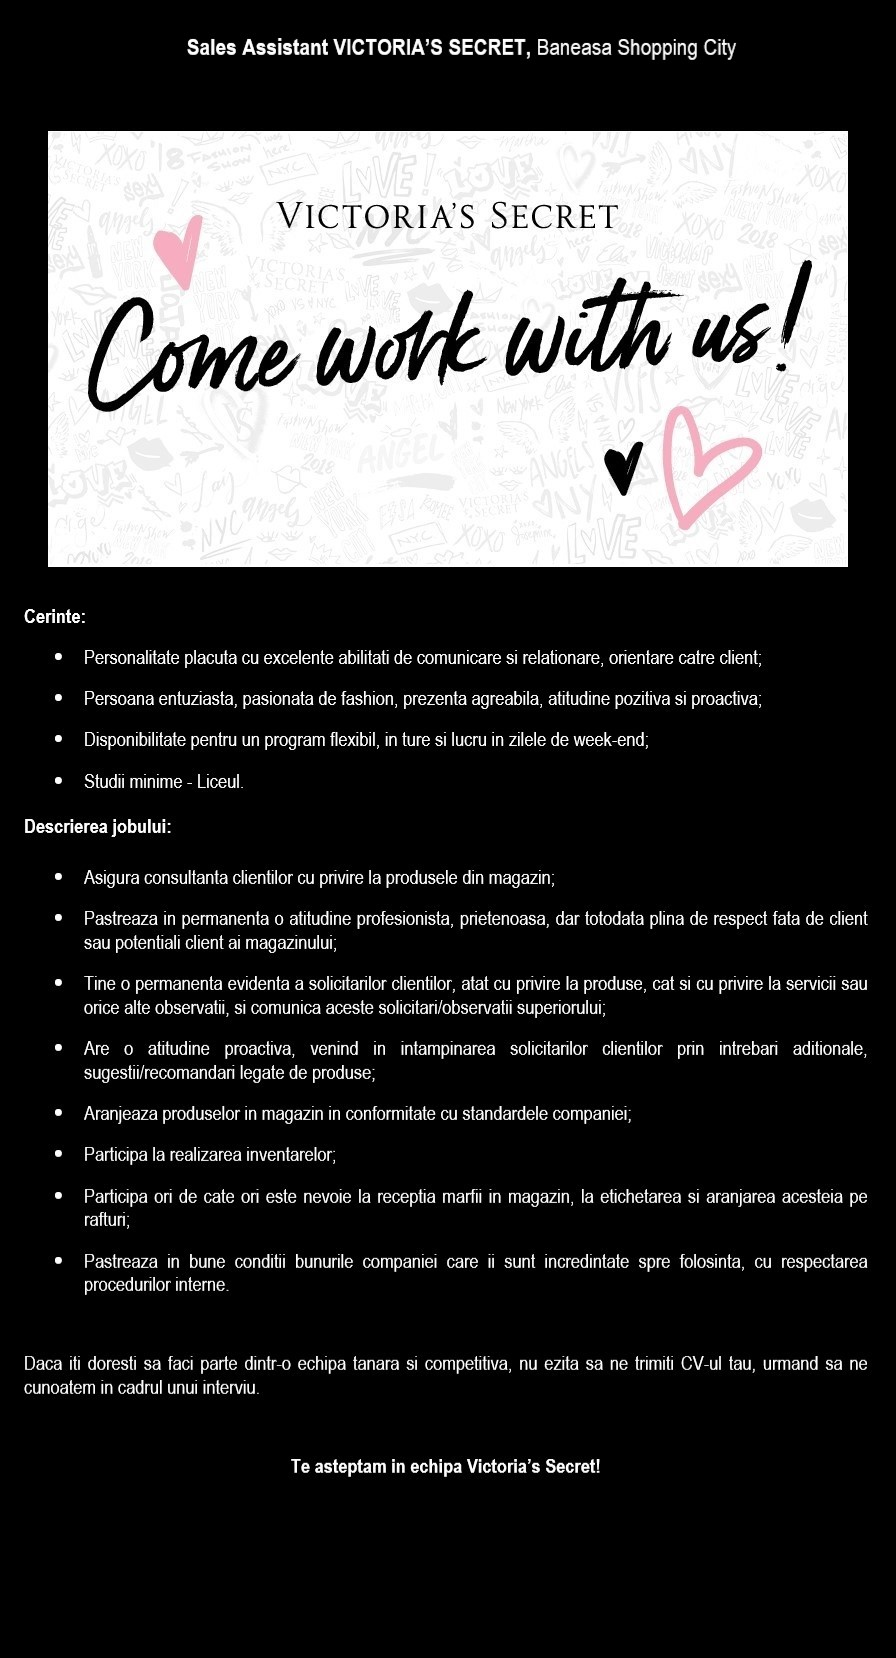 Cerinte: - Personalitate placuta cu excelente abilitati de comunicare si relationare, orientare catre client; - Persoana entuziasta, pasionata de fashion, prezenta agreabila, atitudine pozitiva si proactiva; - Disponibilitate pentru un program flexibil, in ture si lucru in zilele de week-end; - Studii minime - Liceul. Descrierea jobului: - Asigura consultanta clientilor cu privire la produsele din magazin; - Pastreaza in permanenta o atitudine profesionista, prietenoasa, dar totodata plina de respect fata de client sau potentiali client ai magazinului; - Tine o permanenta evidenta a solicitarilor clientilor, atat cu privire la produse, cat si cu privire la servicii sau orice alte observatii, si comunica aceste solicitari/observatii superiorului; - Are o atitudine proactiva, venind in intampinarea solicitarilor clientilor prin intrebari aditionale, sugestii/recomandari legate de produse; - Aranjeaza produselor in magazin in conformitate cu standardele companiei; - Participa la realizarea inventarelor; - Participa ori de cate ori este nevoie la receptia marfii in magazin, la etichetarea si aranjarea acesteia pe rafturi; - Pastreaza in bune conditii bunurile companiei care ii sunt incredintate spre folosinta, cu respectarea procedurilor interne.  Daca iti doresti sa faci parte dintr-o echipa tanara si competitiva, nu ezita sa ne trimiti CV-ul tau, urmand sa ne cunoatem in cadrul unui interviu.  Te asteptam in echipa Victoria's Secret! As a leading international franchise operator, with nearly 90 of the world's most recognised brands in its portfolio, Alshaya Group brings great shopping, dining, leisure and hospitality experiences to millions of customers across the Middle East & North Africa, Russia, Turkey, Europe and beyond. Alshaya Group is a dynamic multinational business and family owned enterprise with a consistent record of growth and innovation. For 35 years, Alshaya has been a pioneering force in brand franchising, using its exceptional knowledge and experienc